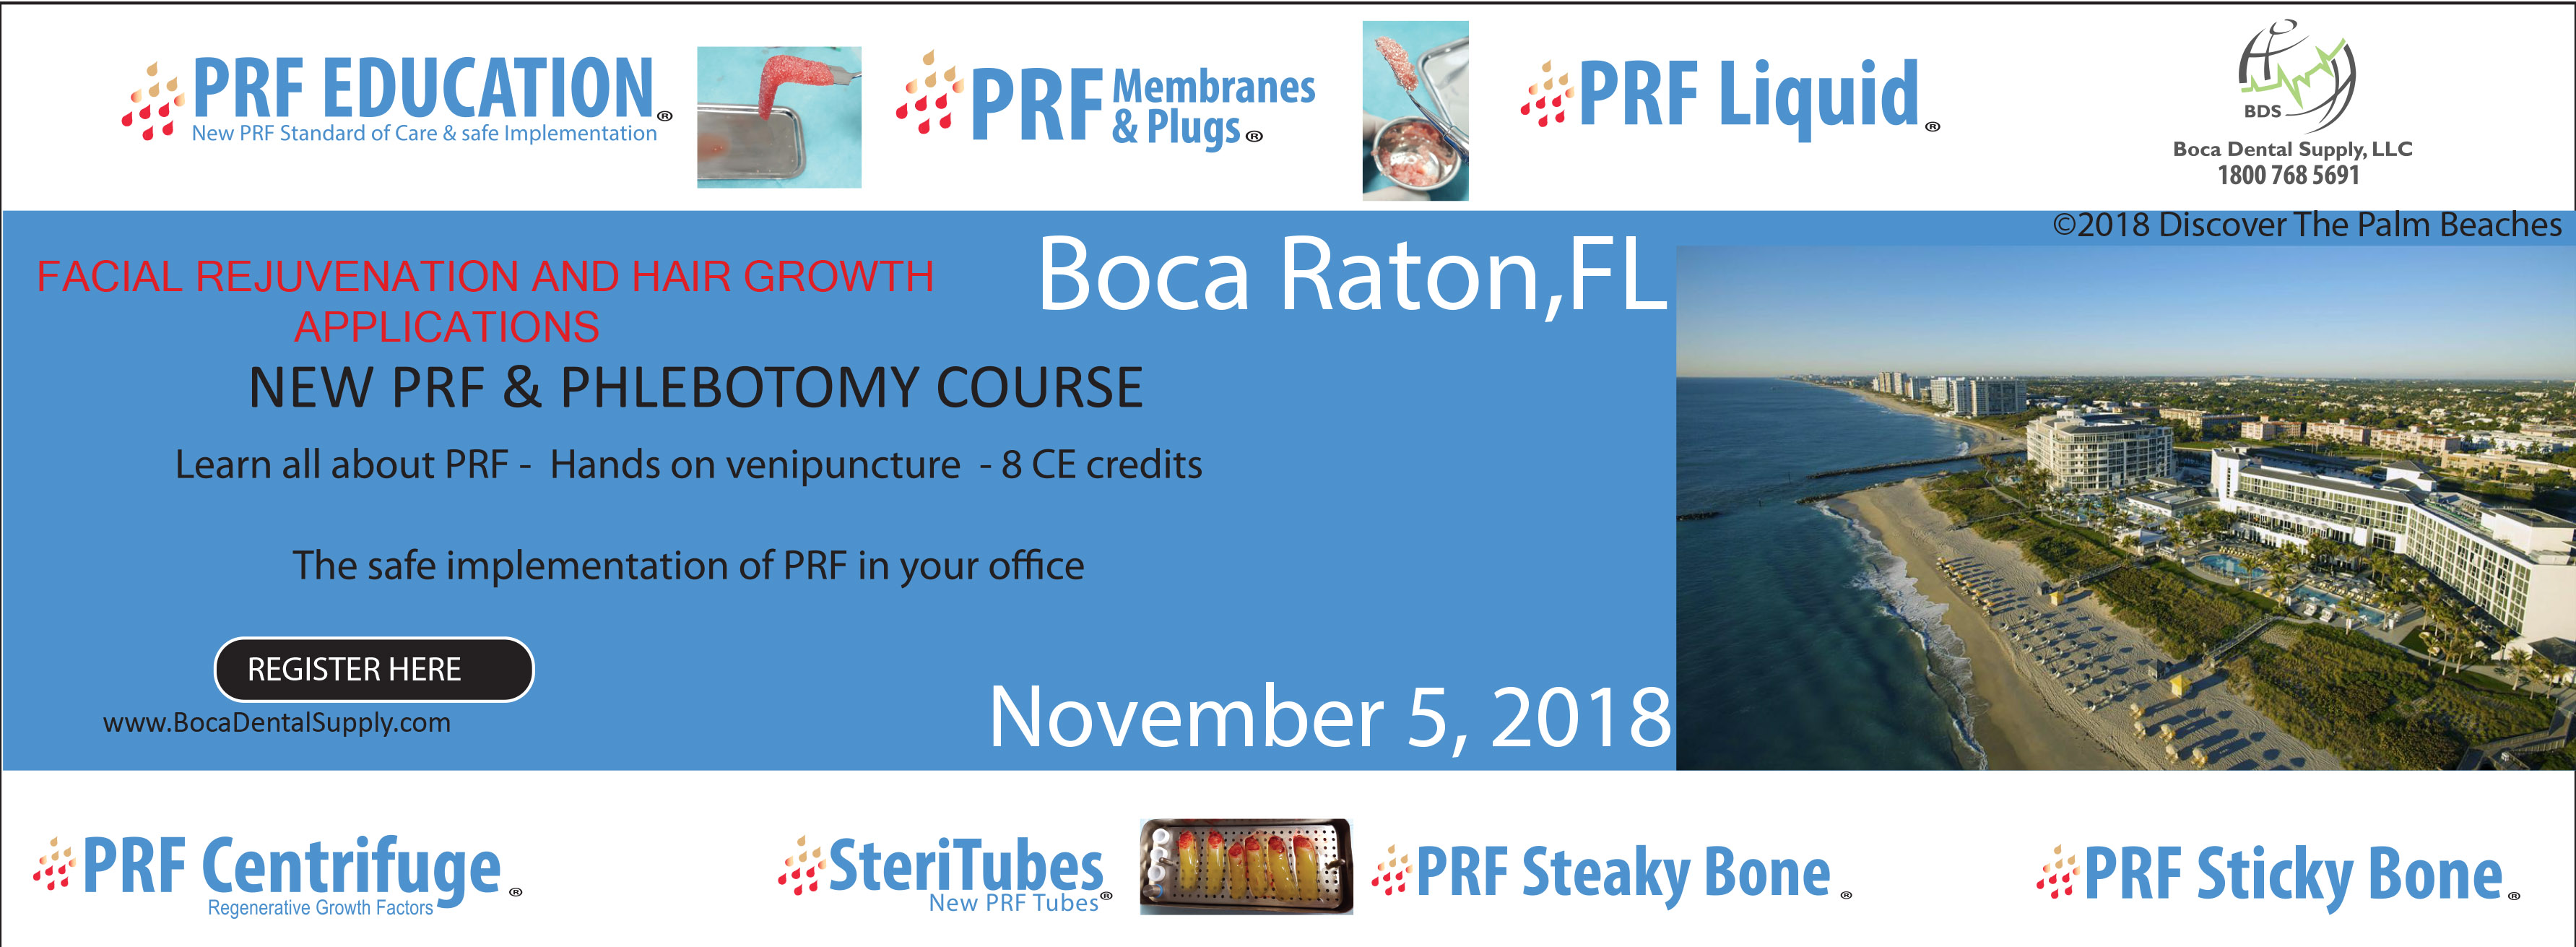 prf-course-boca-raton-facial-rejuvenation-nov-2018.jpg